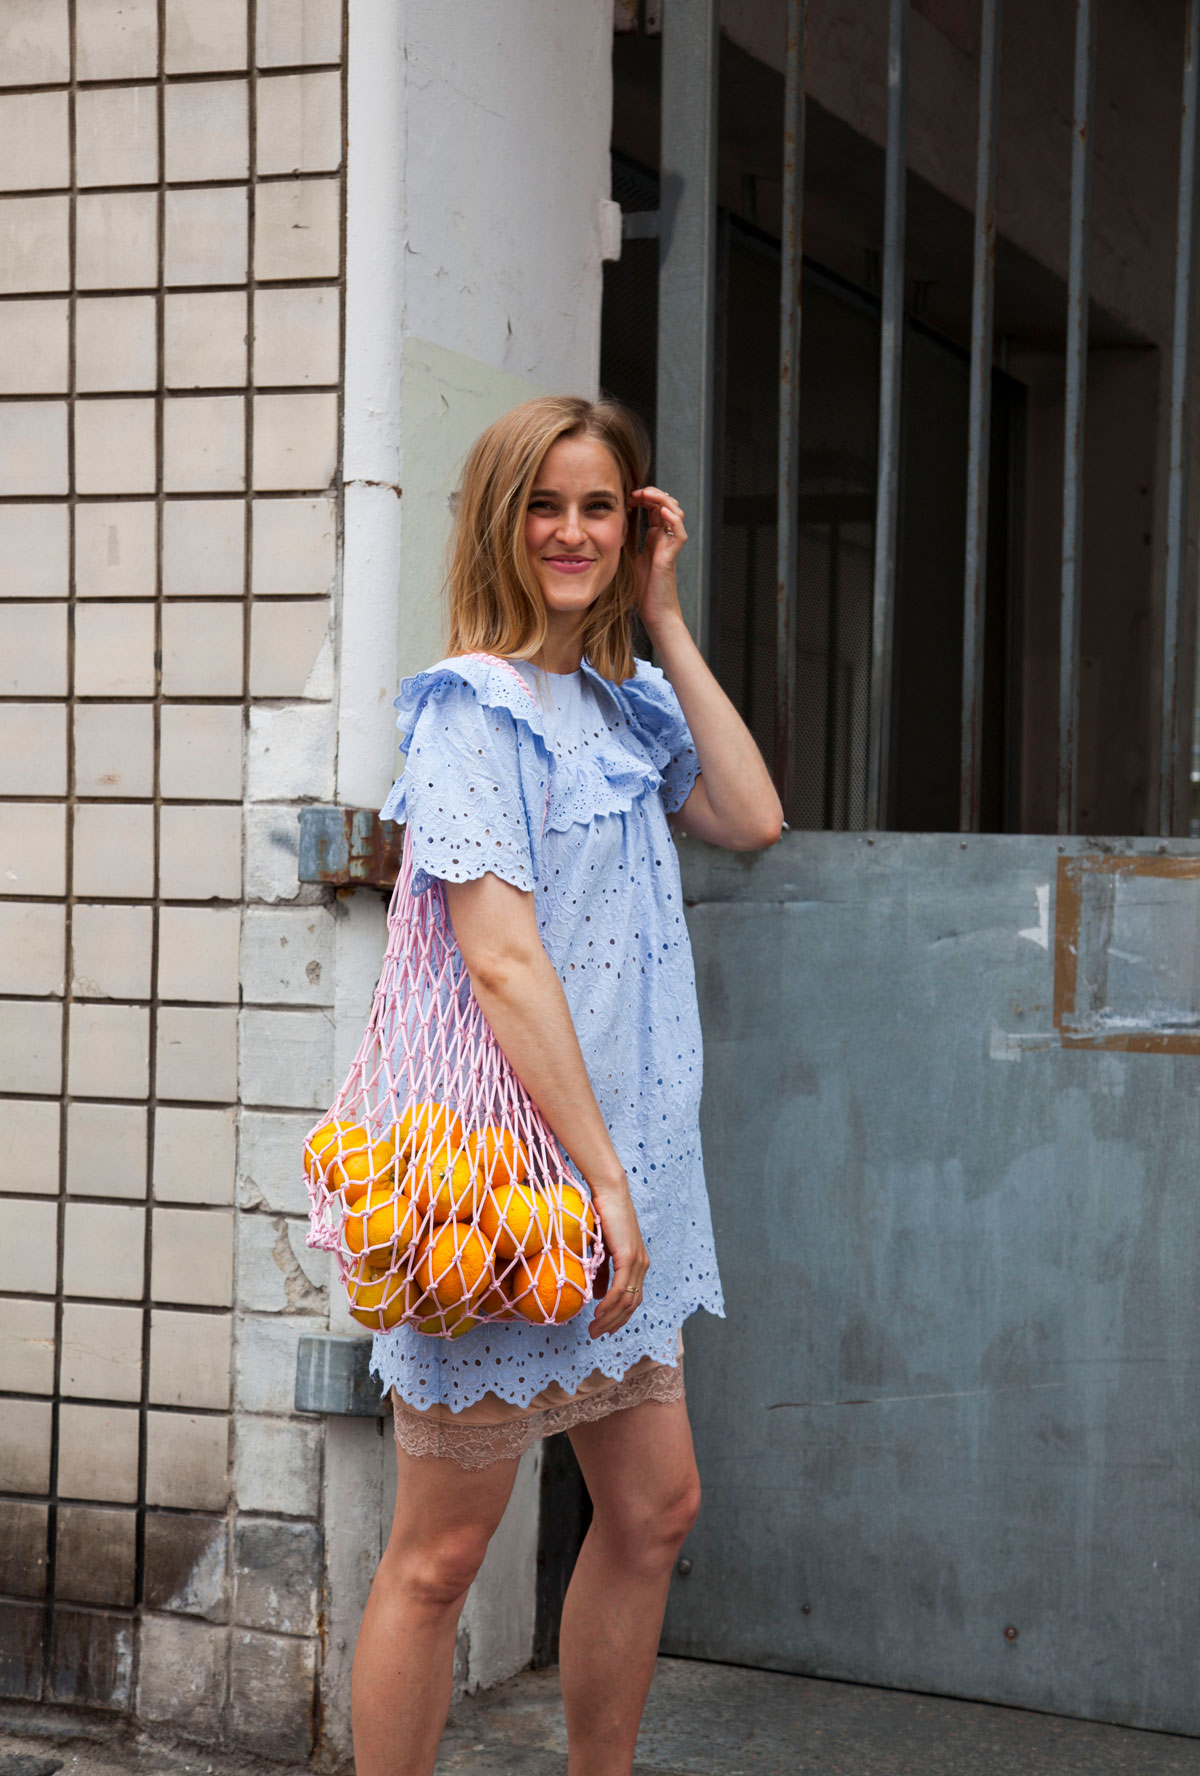 rockpaperdresses, cathrine widunok wichmand, outfit of the day, H&M Conscious Exclusive Net, Julie Bjarnhoff